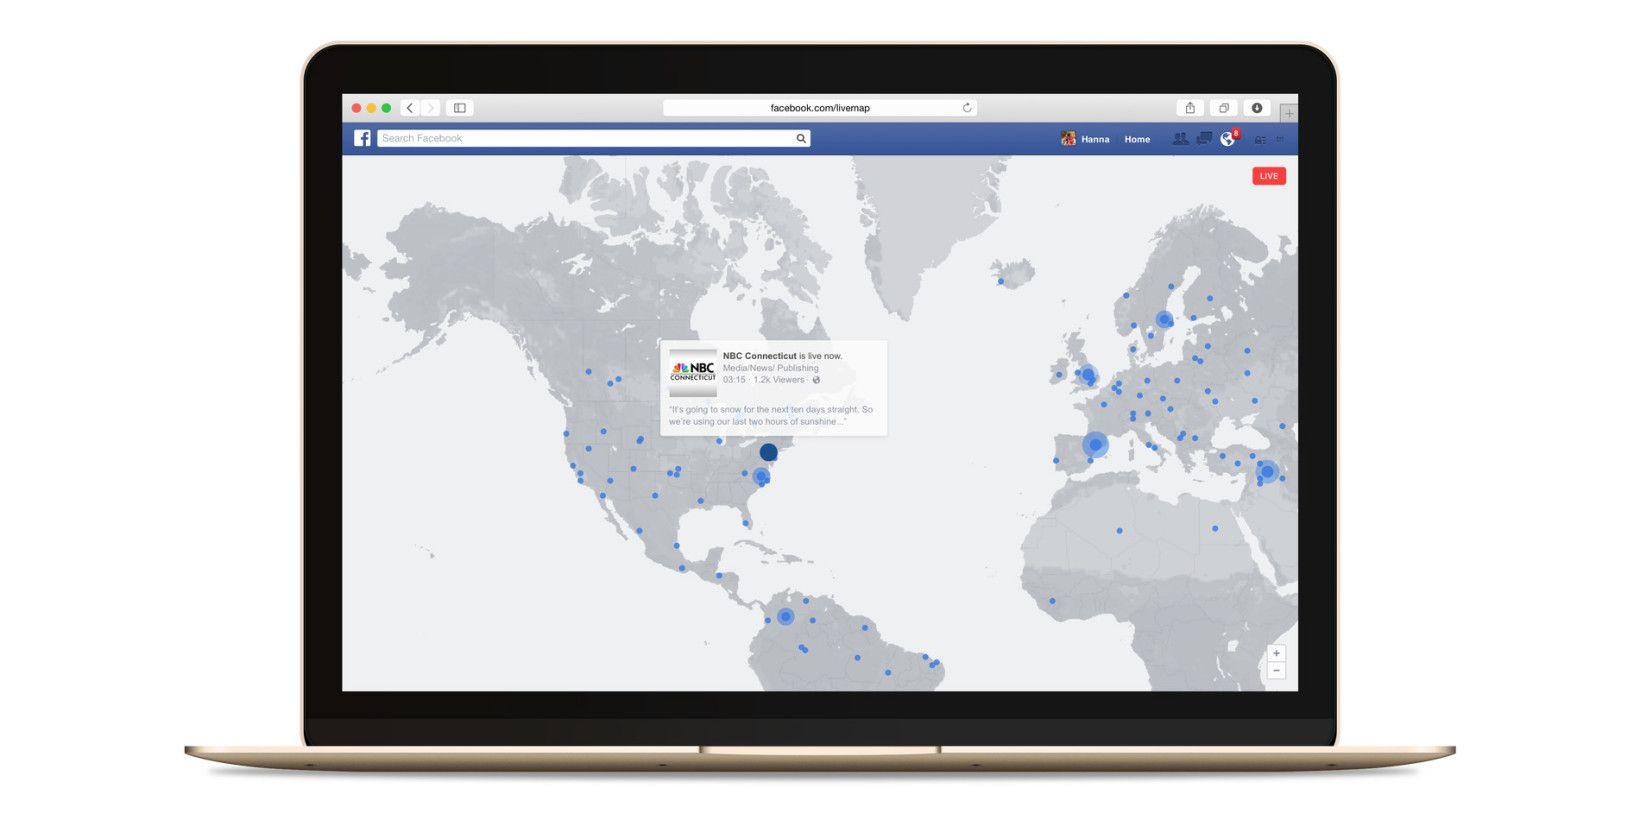 #Facebook interactive map is the best way for real-time videos streaming http://thenextweb.com/facebook/2016/05/19/facebooks-interactive-map-best-way-live-videos-streaming-real-time/ via The Next Web